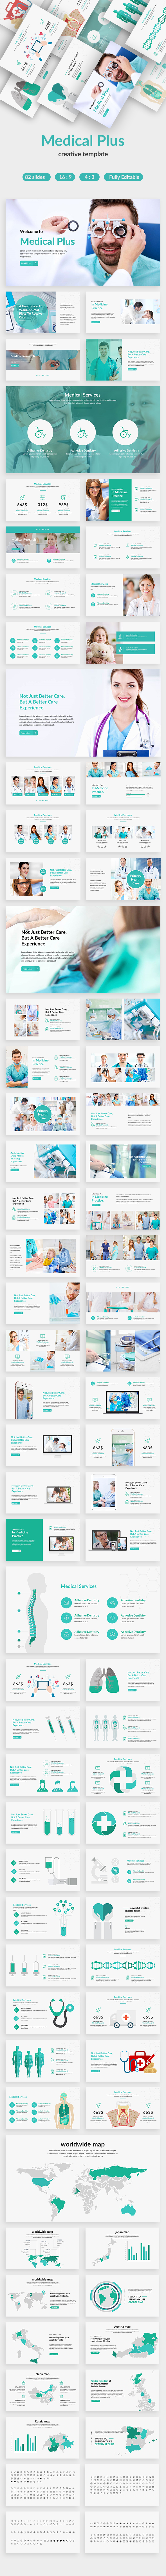 Medical Plus Powerpoint Template - Creative PowerPoint Templates